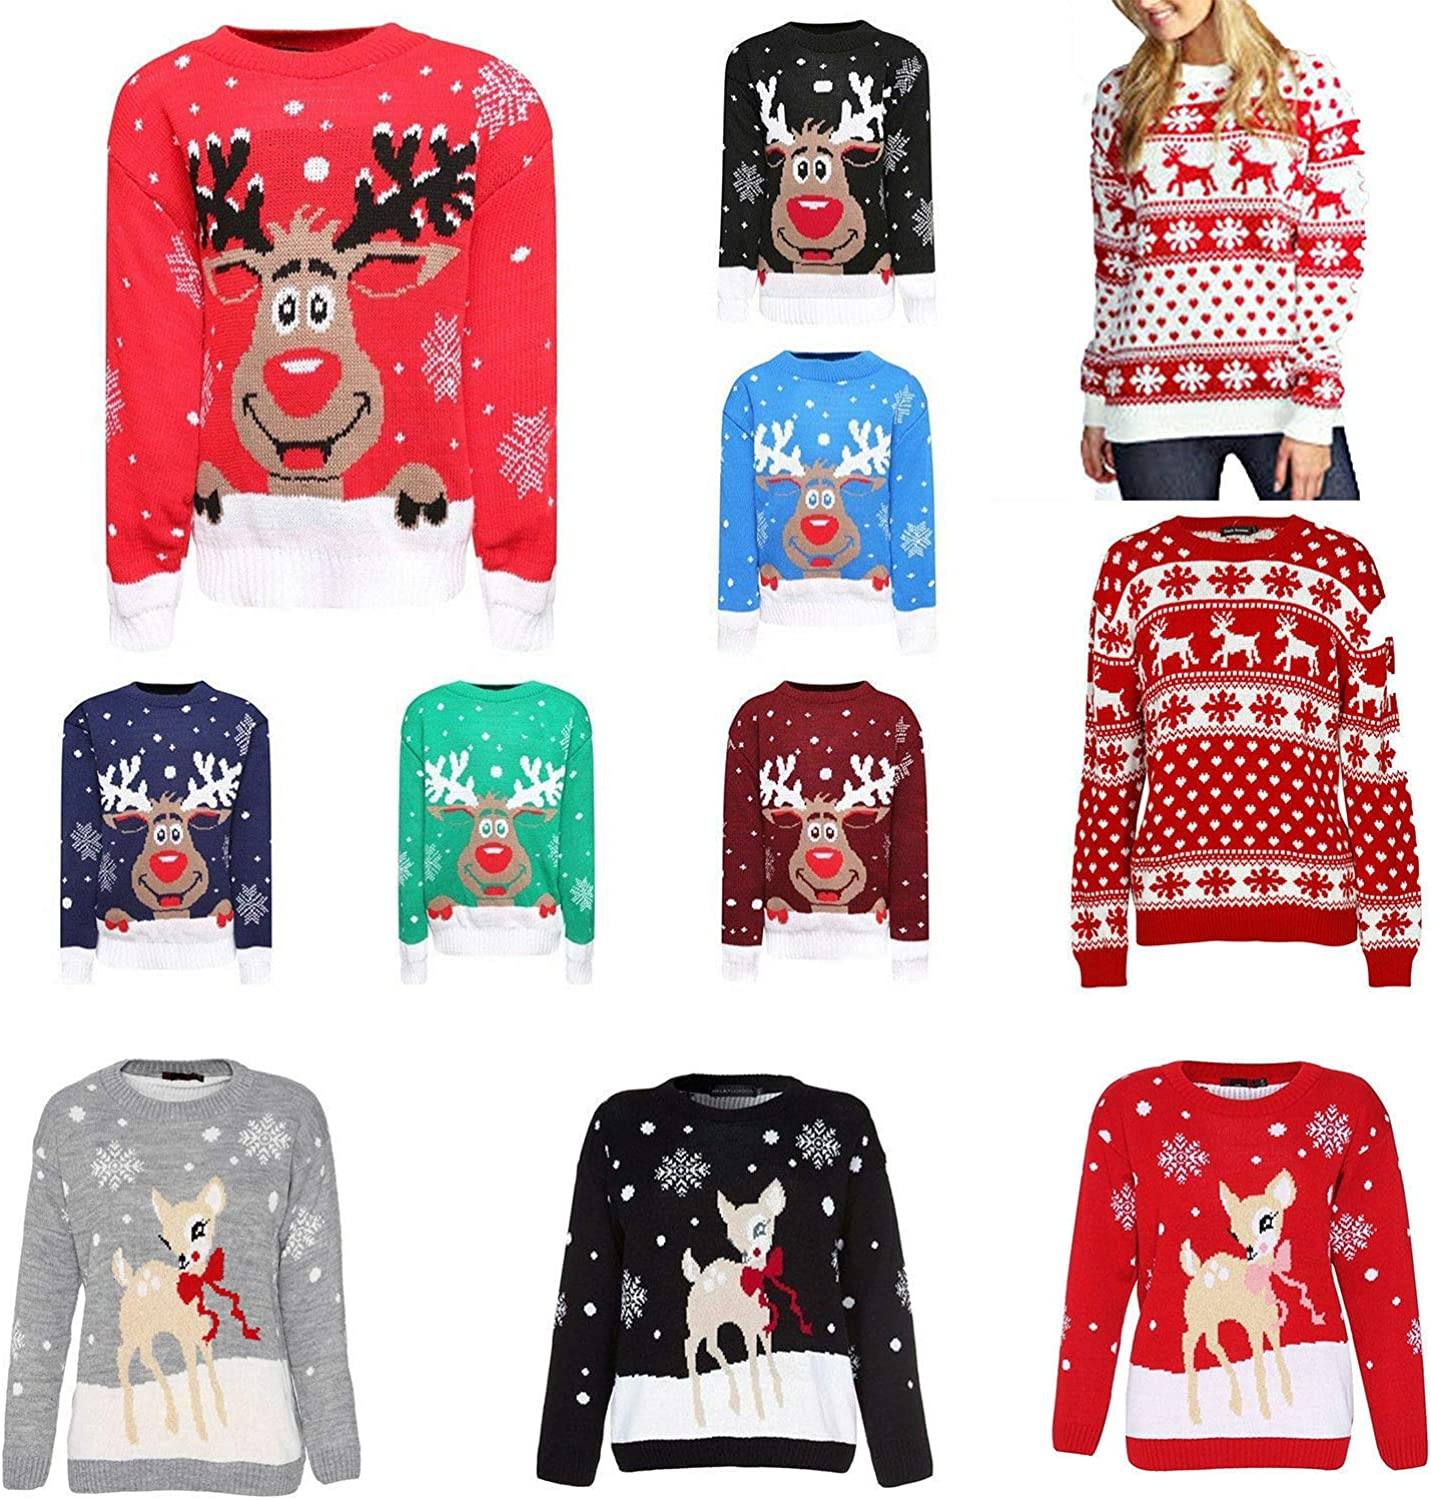 New Unisex Kids Jumper Christmas Xmas Boys Girls Childrens Knitted Top Winter Novelty Sweater Reindeer Rudolph AGE 3-12